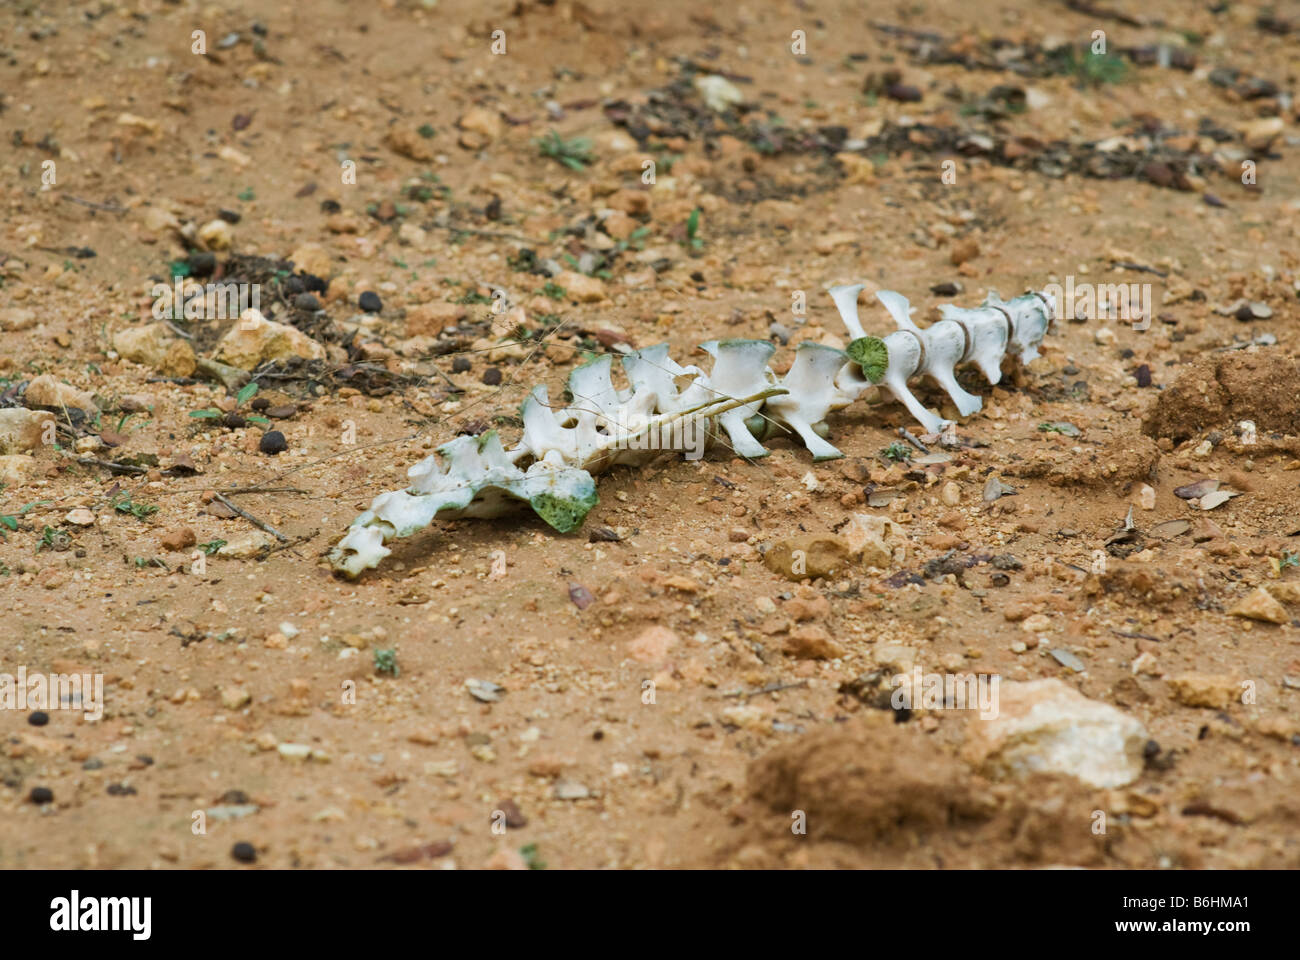 Animal skeleton laying in clay-type earth in Almansa, Spain, Europe - Stock Image